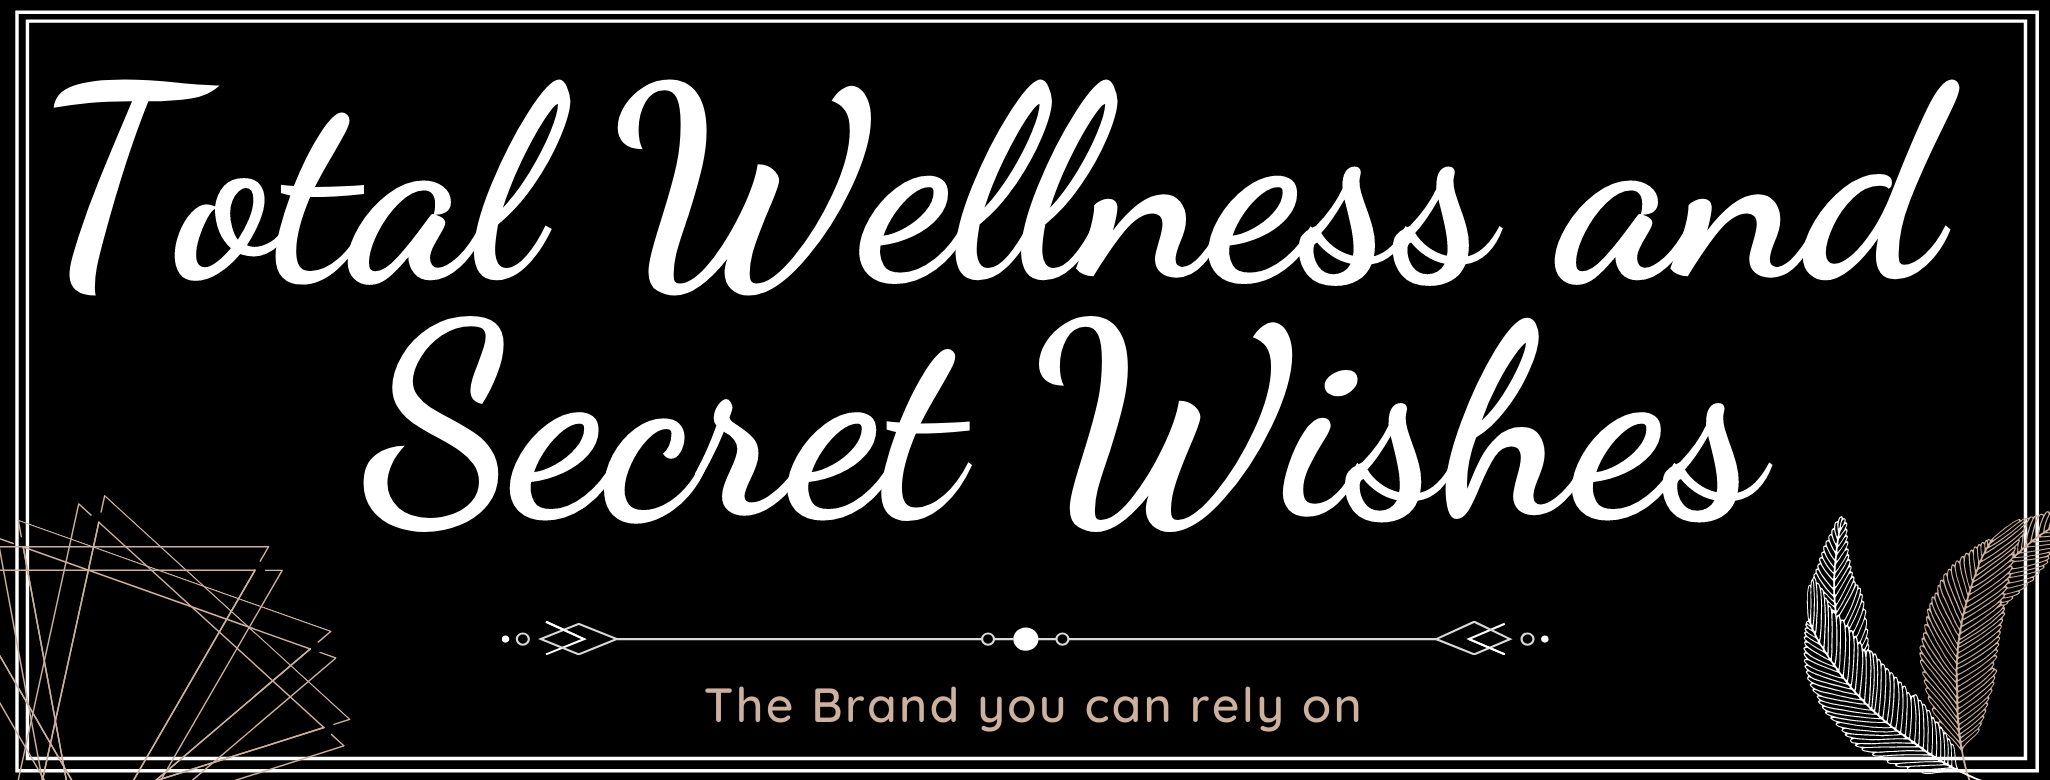 Total Wellness & Secret Wishes